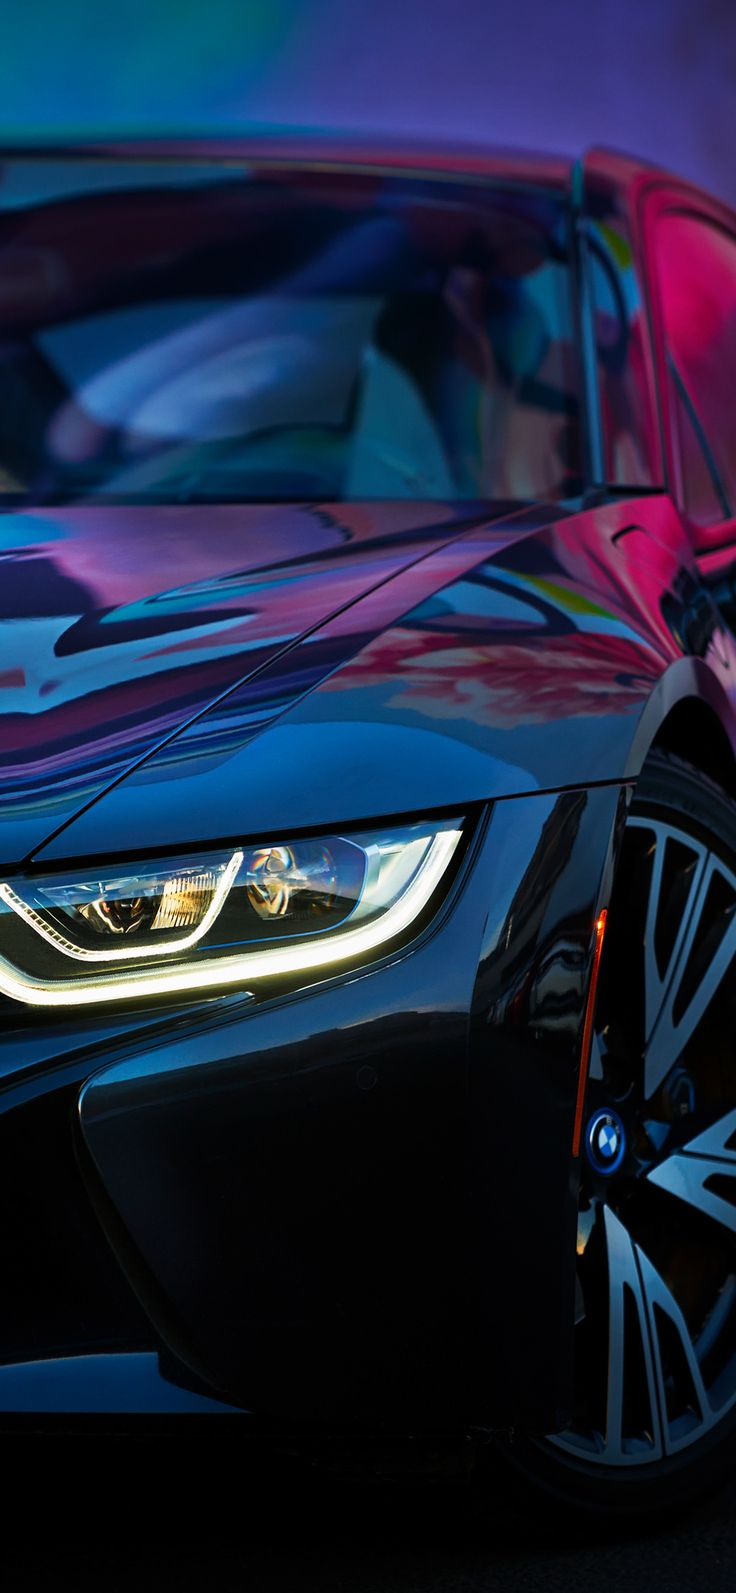 1125 2436 Bmw I8 2018 Iphone X Iphone 10 Hd 4k Wallpapers Images